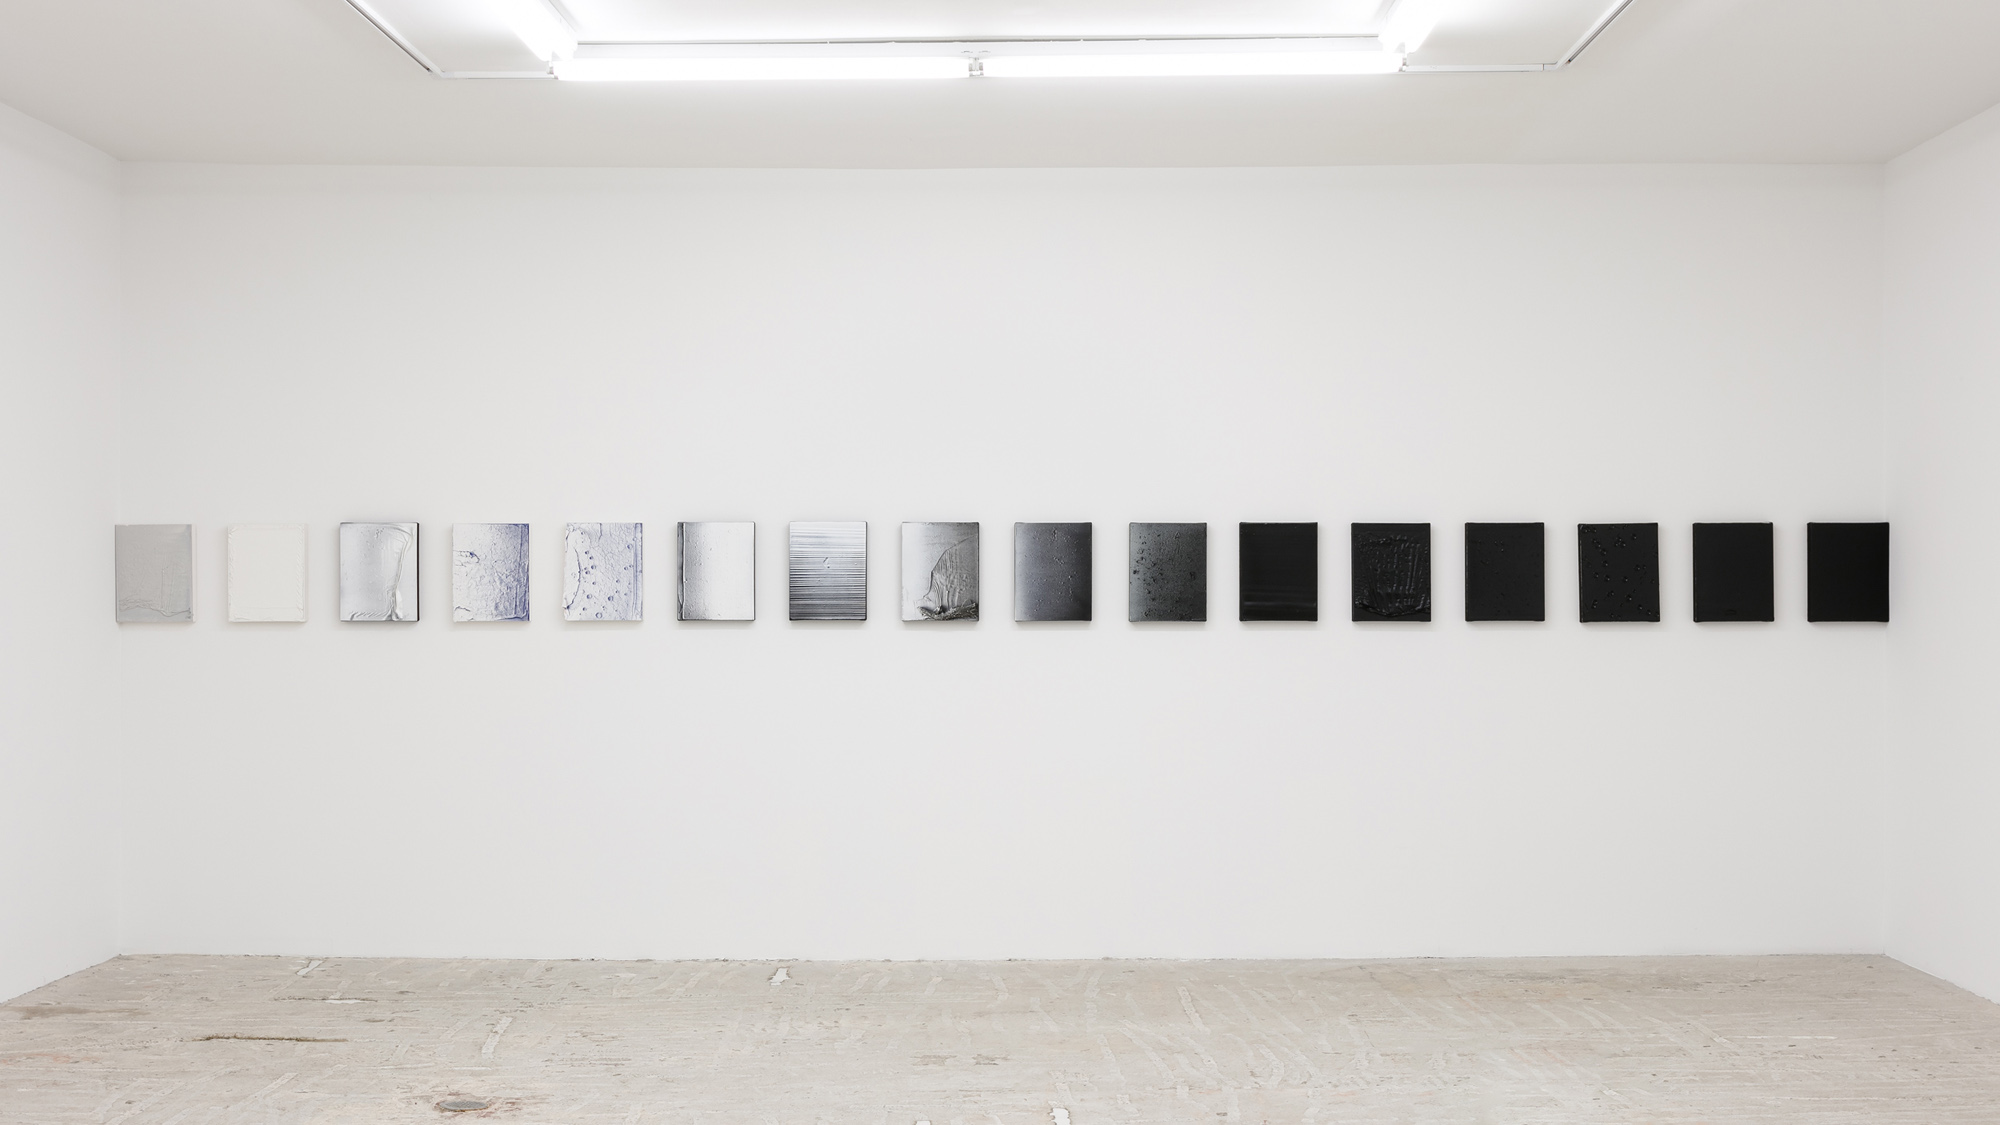 Thomas Fougeirol,  Bullet Through Glass,  Installation view at Lyles & King, New York, US, March 25 - April 30, 2017